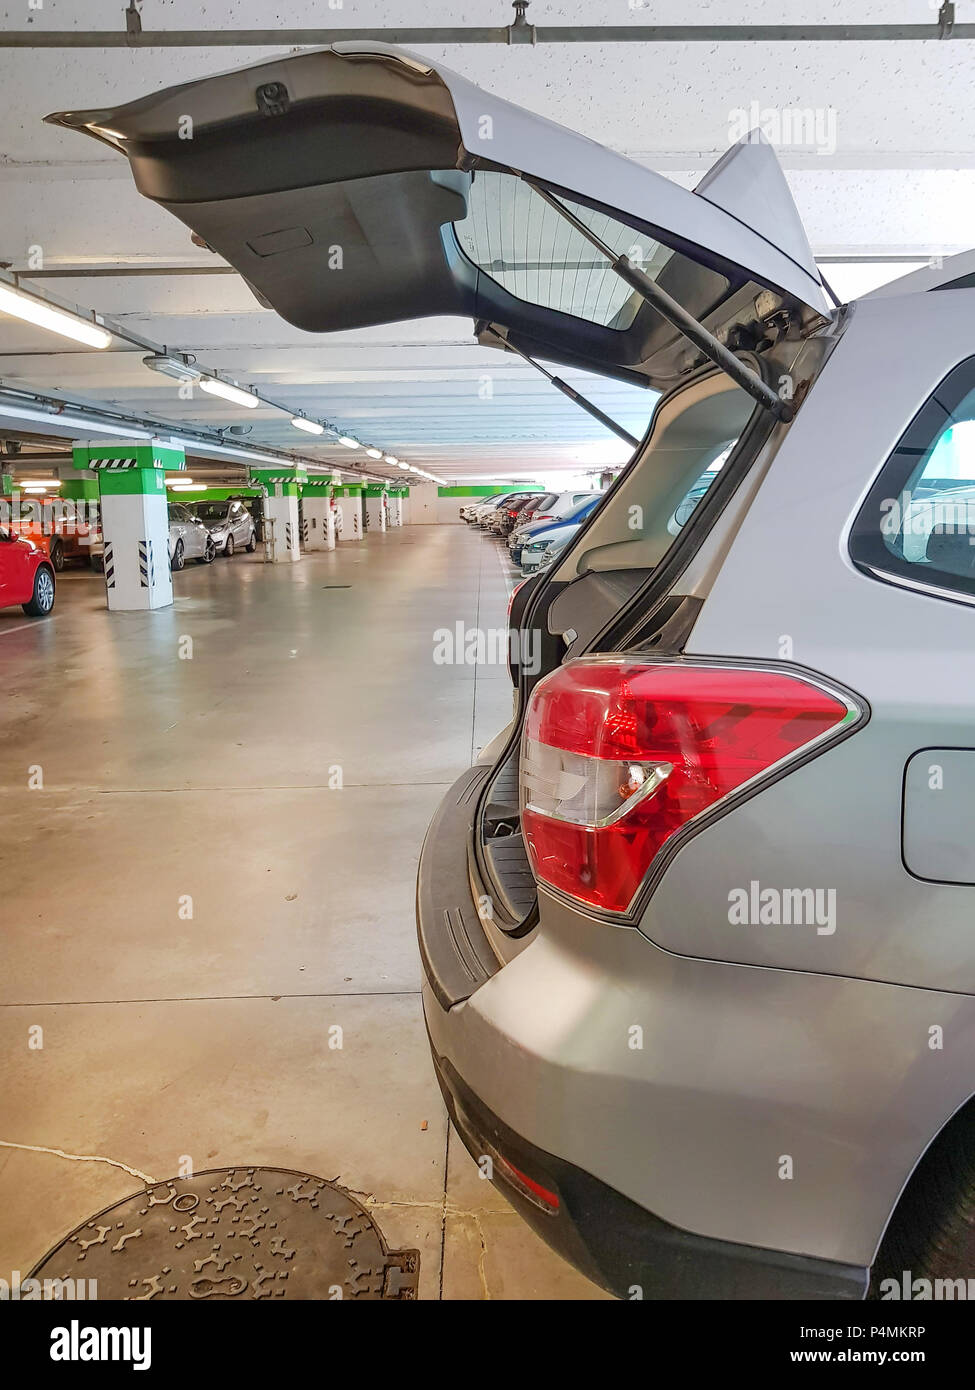 Hatchback car, open car trunk in parking car under shopping mall. - Stock Image